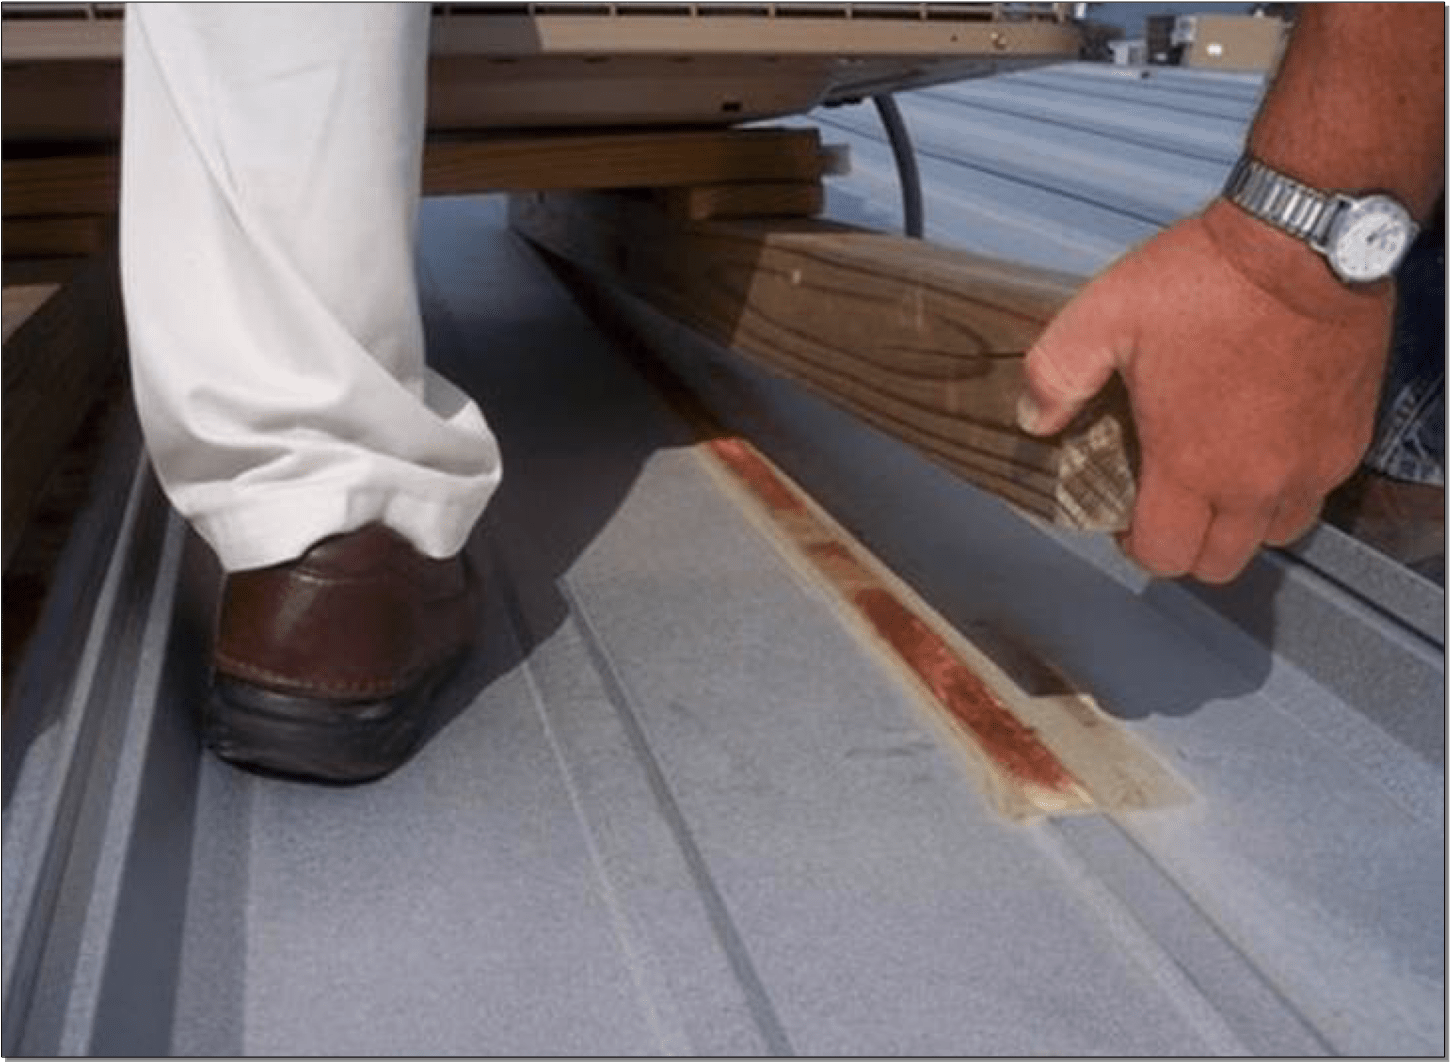 S-5! Wrong way to install HVAC - Image shows how mounting with wood can encourage moisture to become trapped and induce corrosion shown on metal panel-min